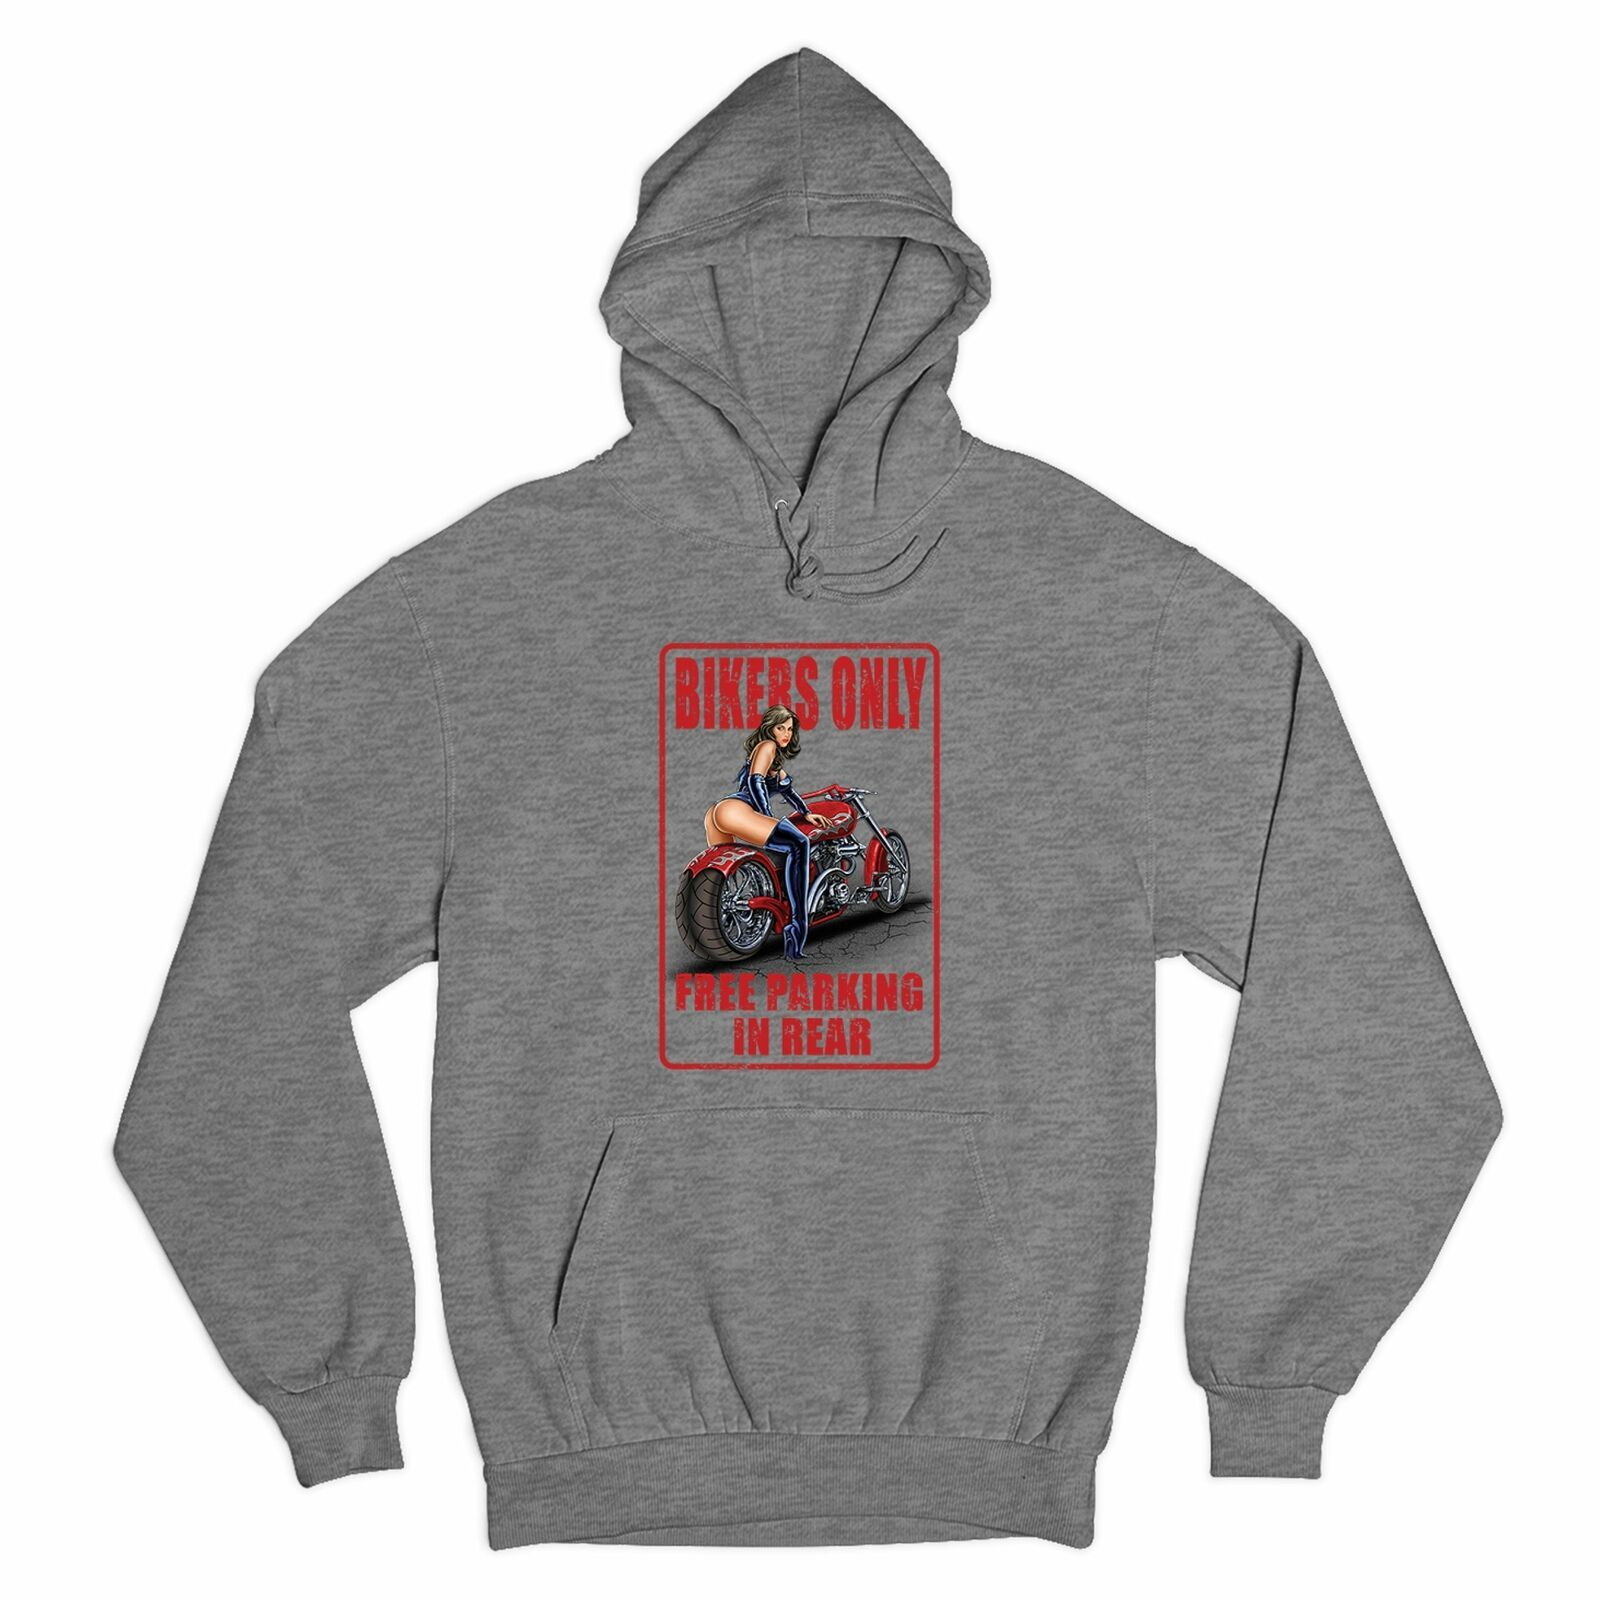 Primary image for Bikers Only Free Parking In Rear Sweatshirt Funny Pin-Up Biker Chick Hoodie